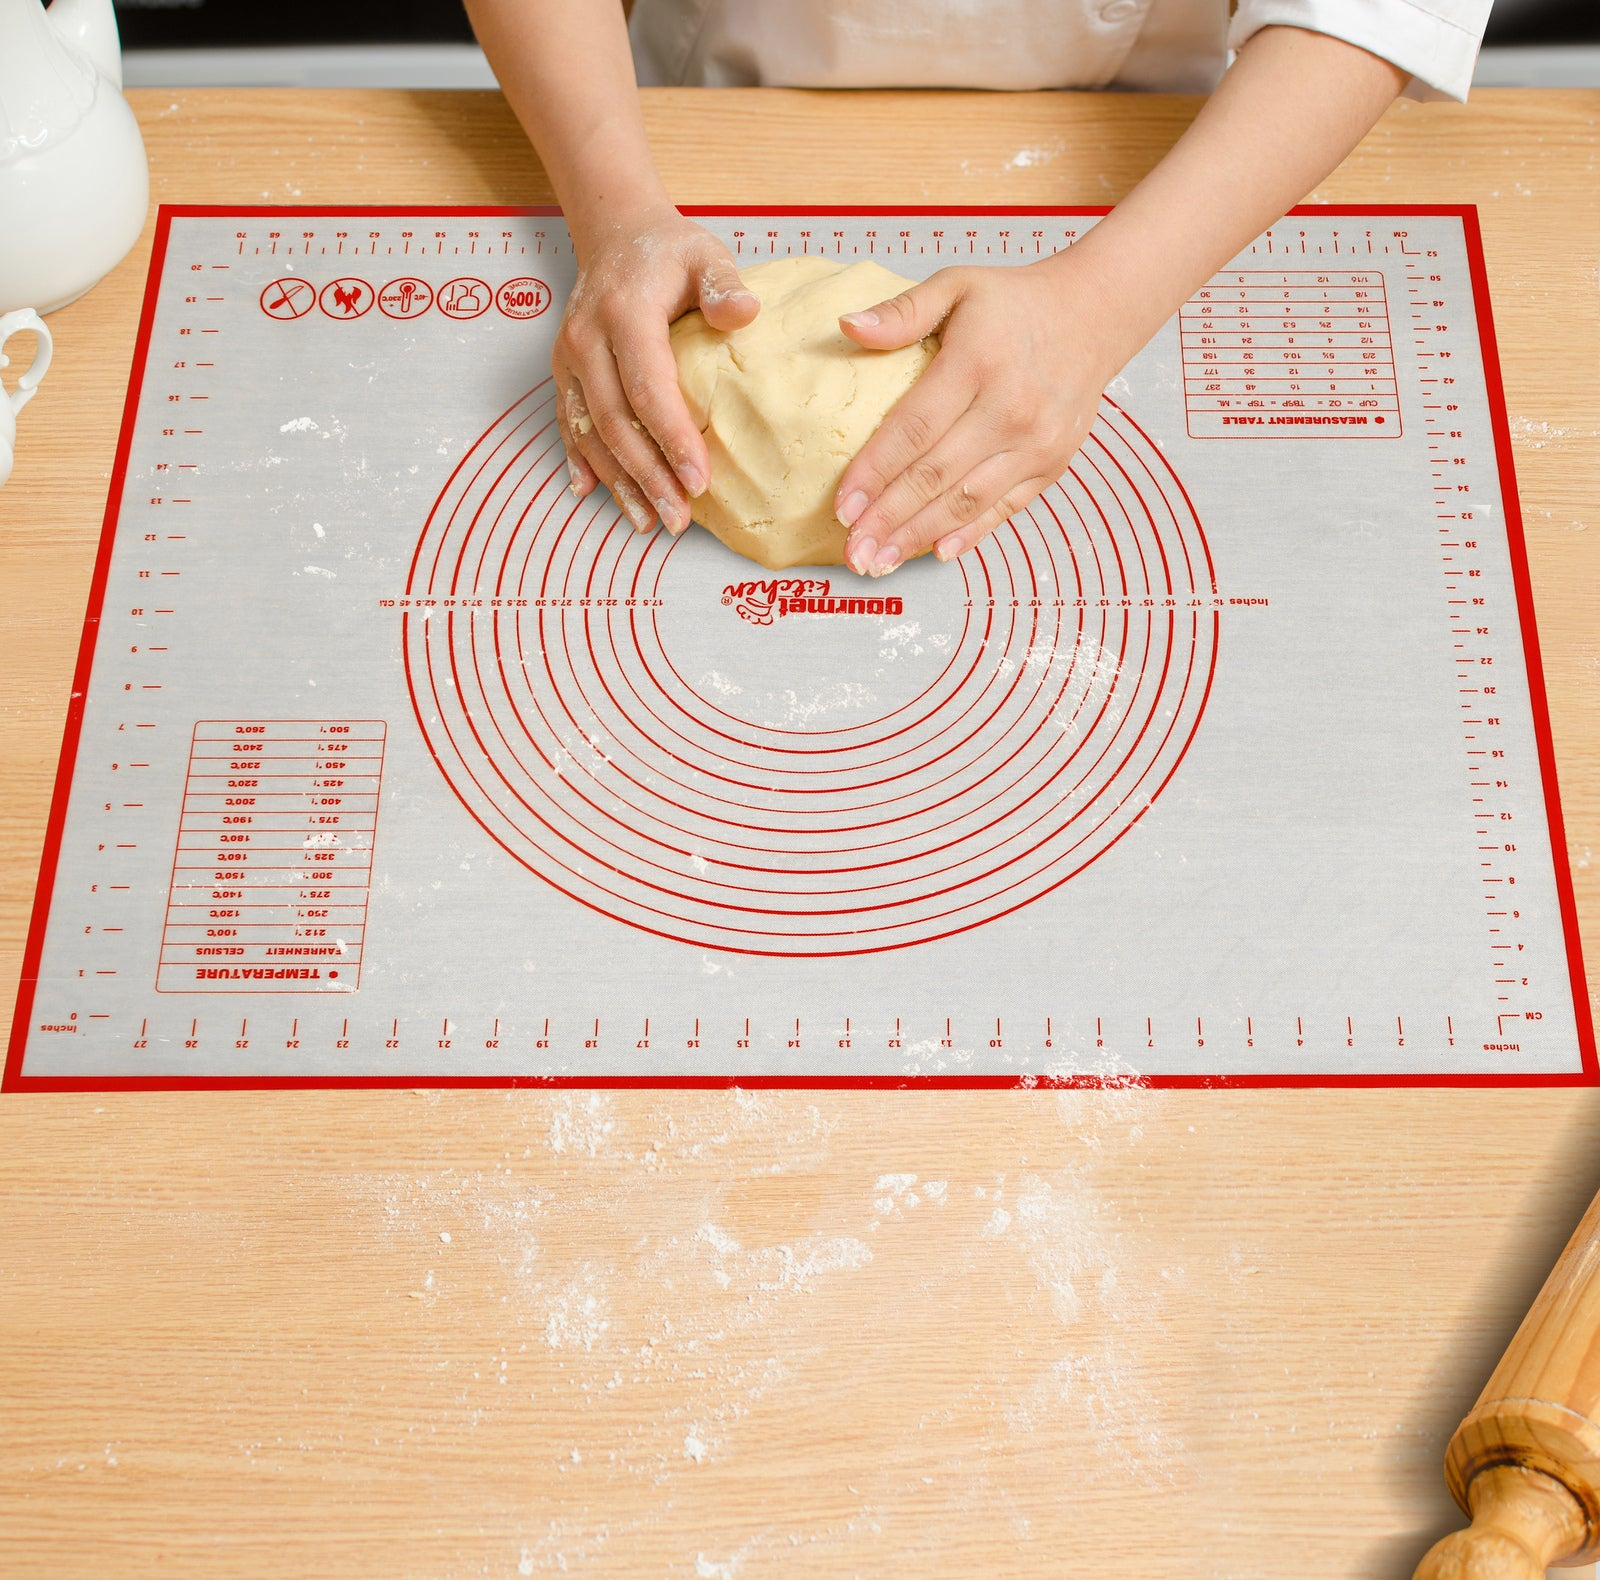 Gourmet Kitchen Non-Stick Oven And Dishwasher Safe Silicone Pastry Baking Mat With Red/White 60X80Cm